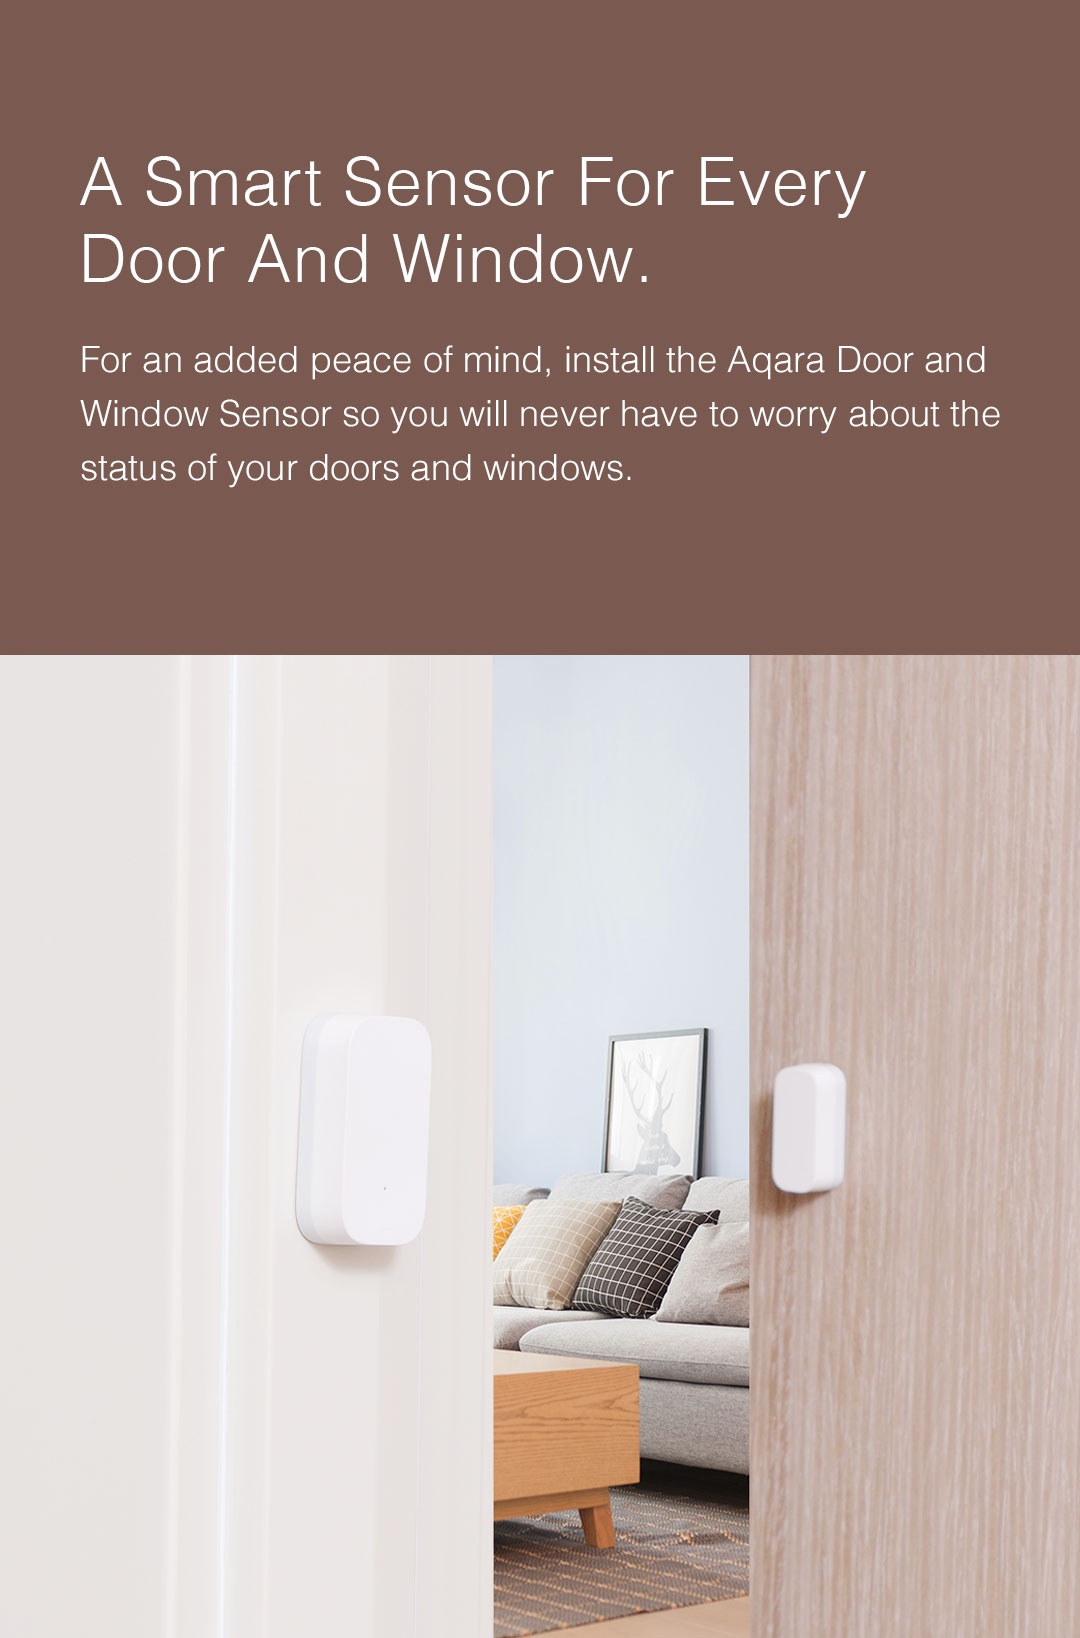 Smart Door/Window Sensor detects continously the status of your door or window